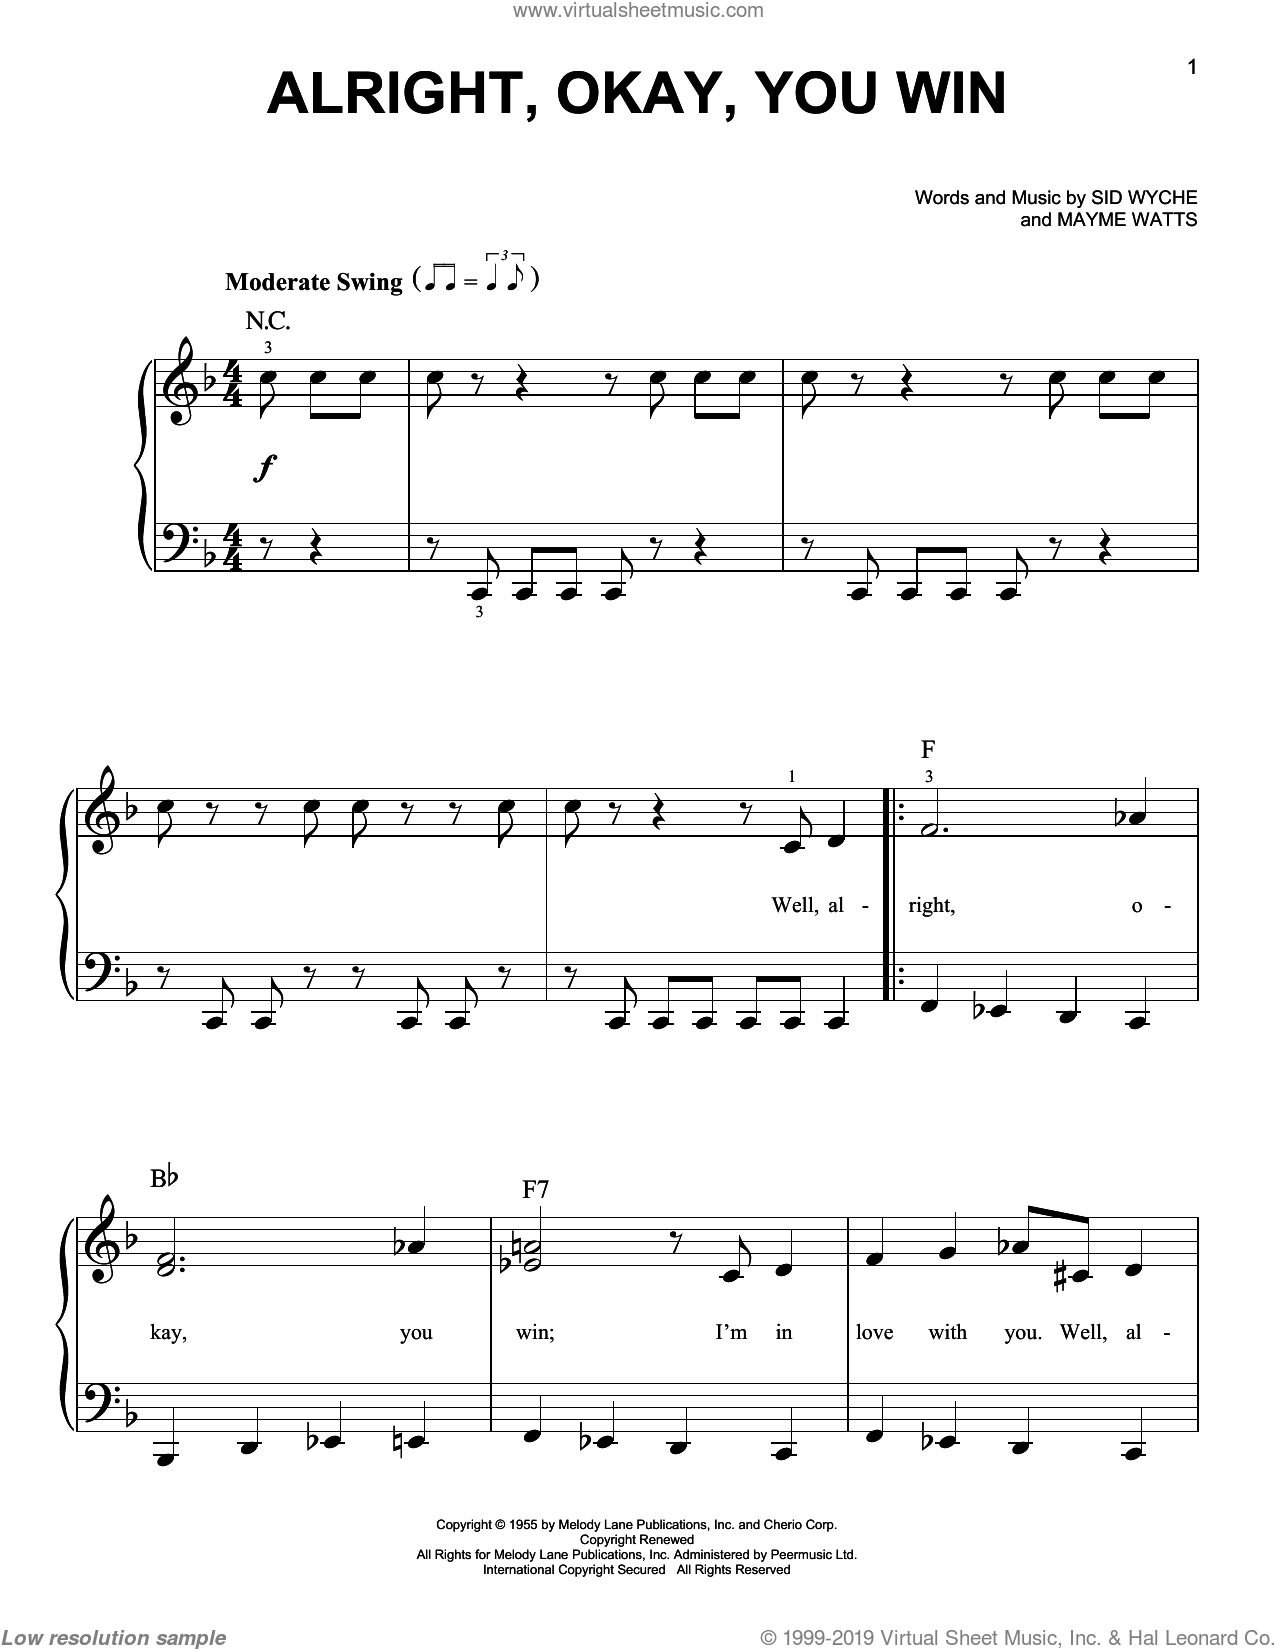 Alright, Okay, You Win sheet music for piano solo (chords) by Sid Wyche